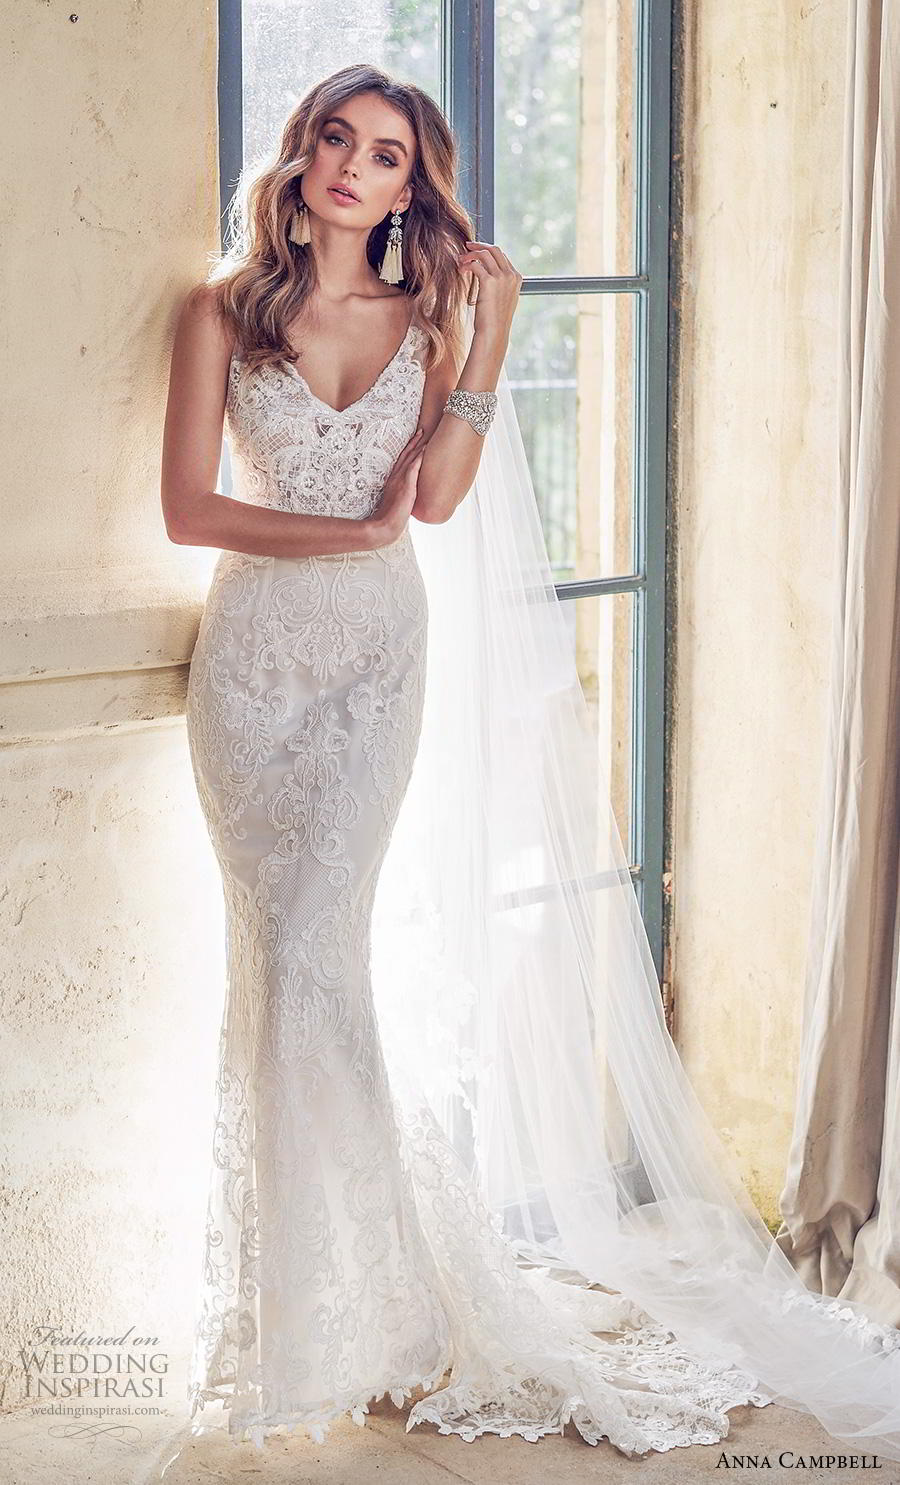 anna campbell 2019 bridal sleeveless v neck full embellishment elegant fit and flare wedding dress backless v back medium train (5) mv